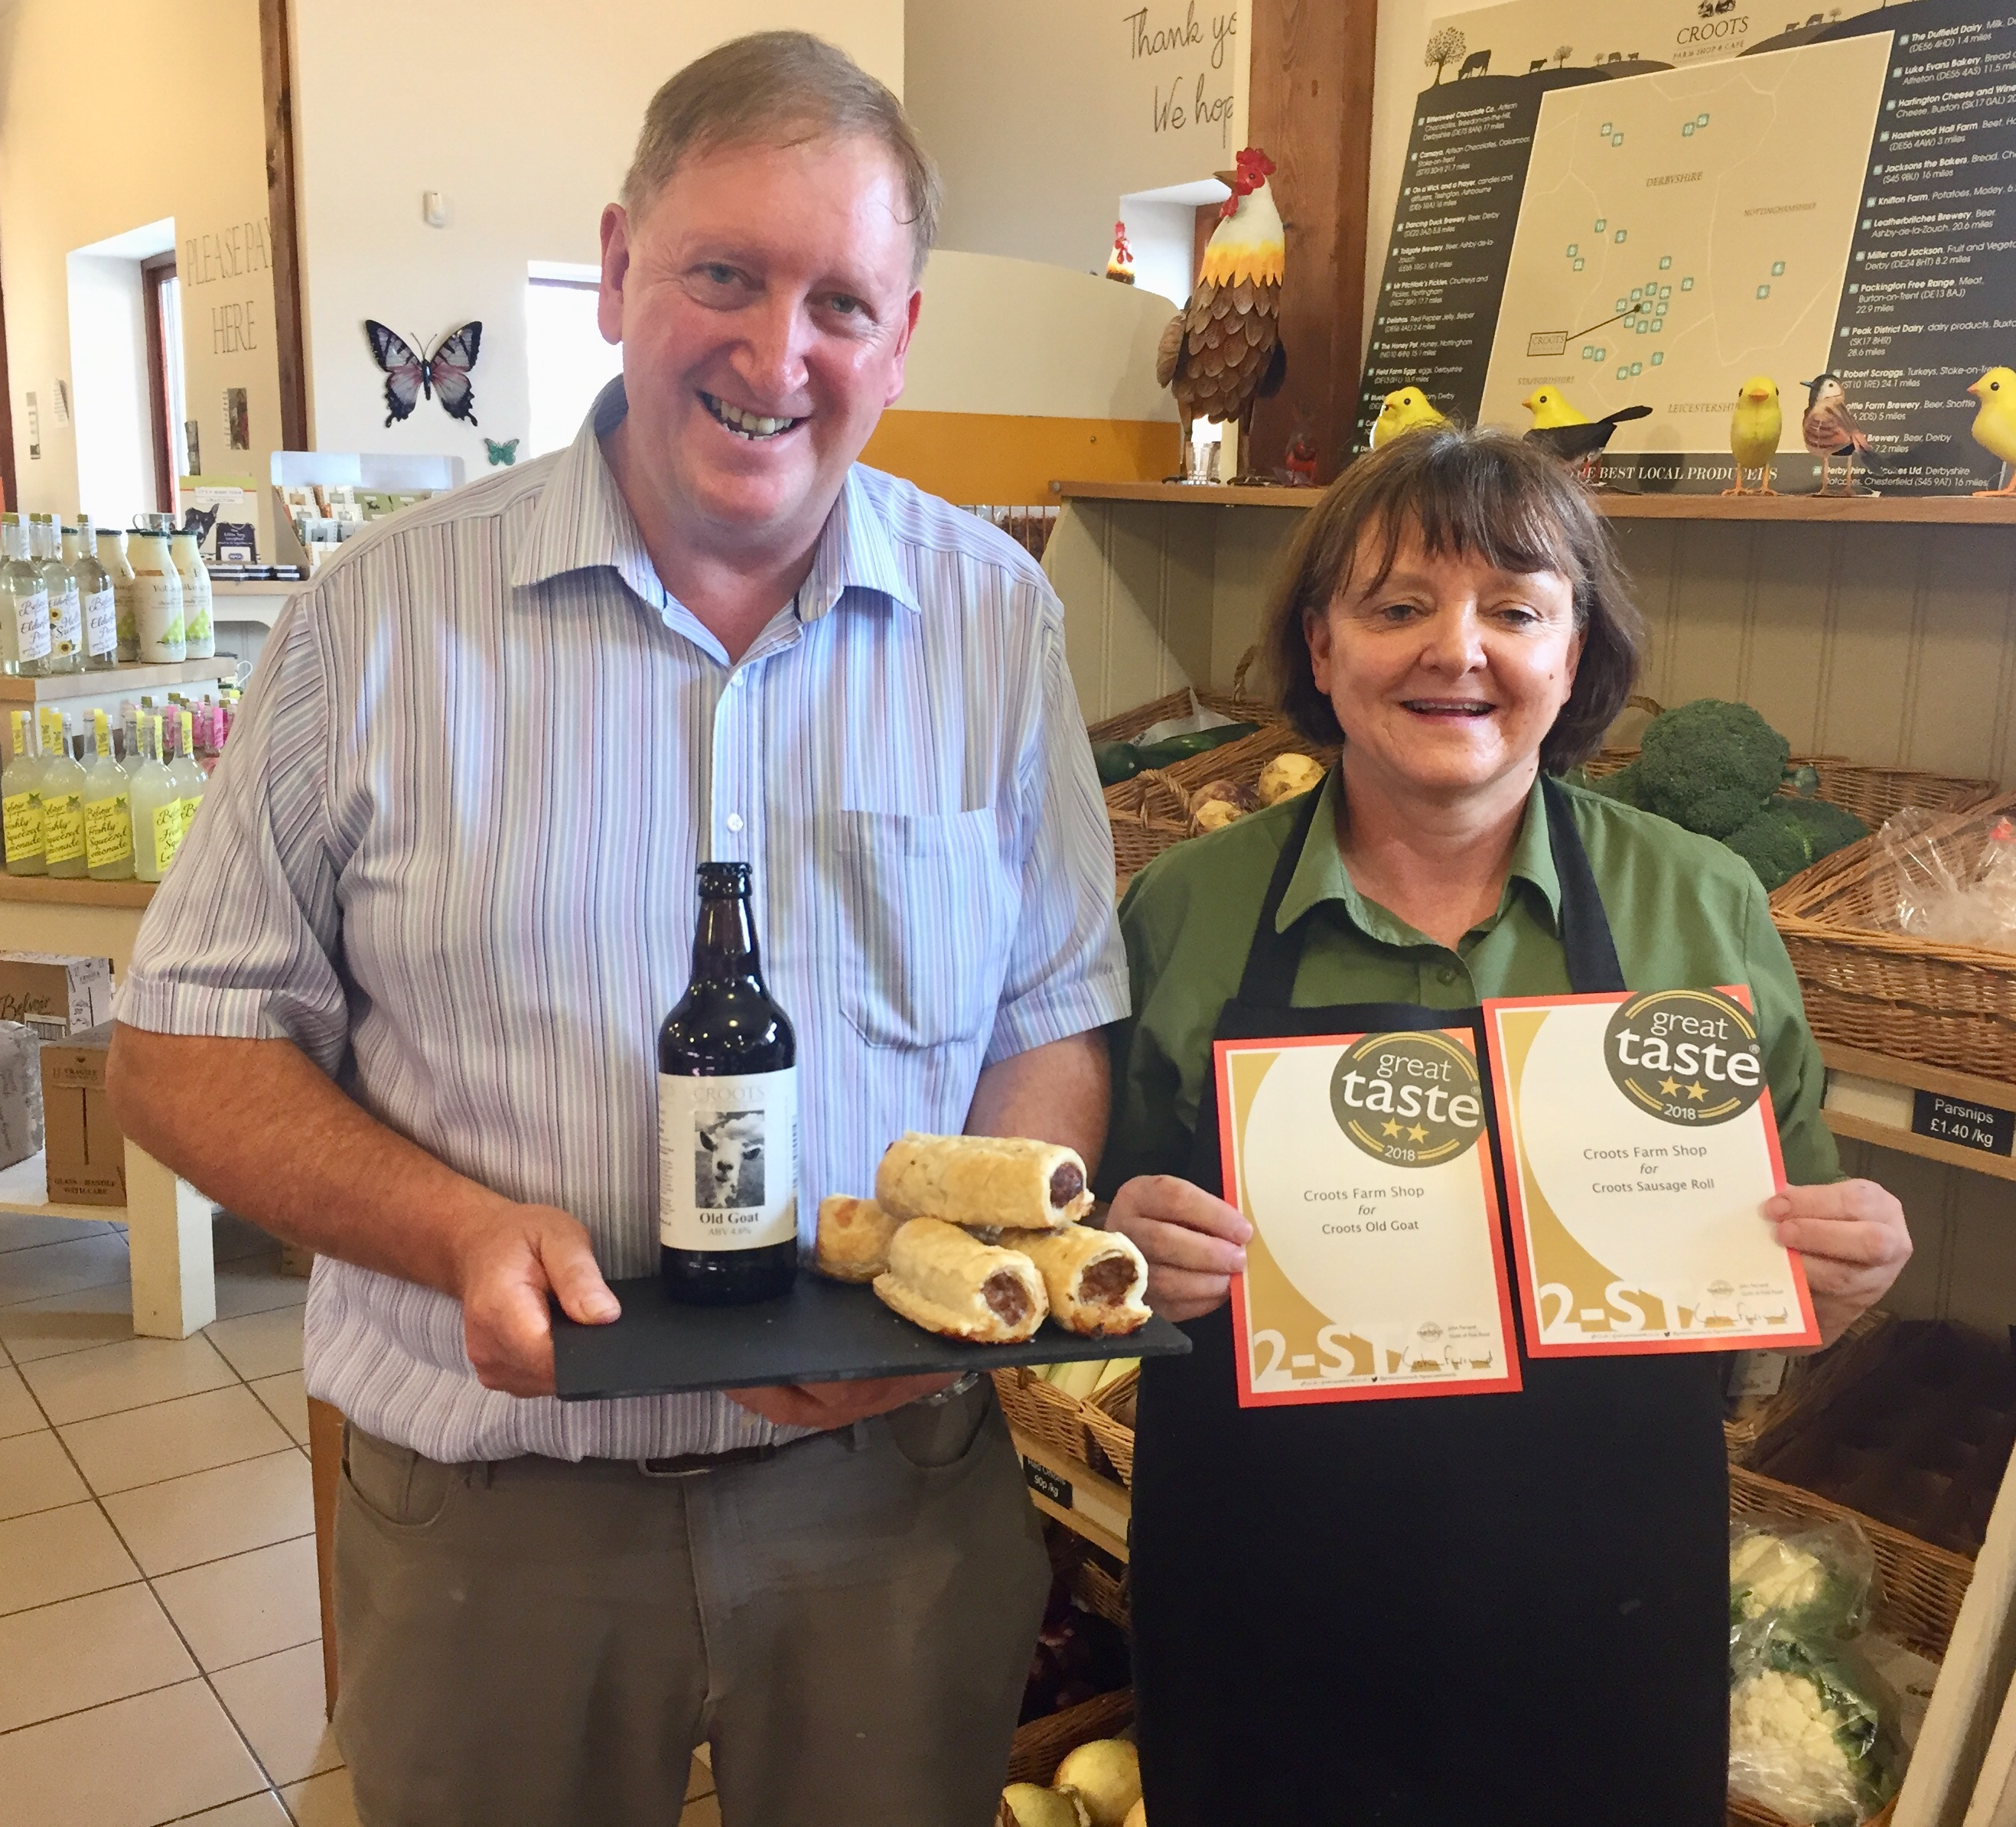 Double delight as Croots Farm Shop scores success in the Great Taste Awards 2018